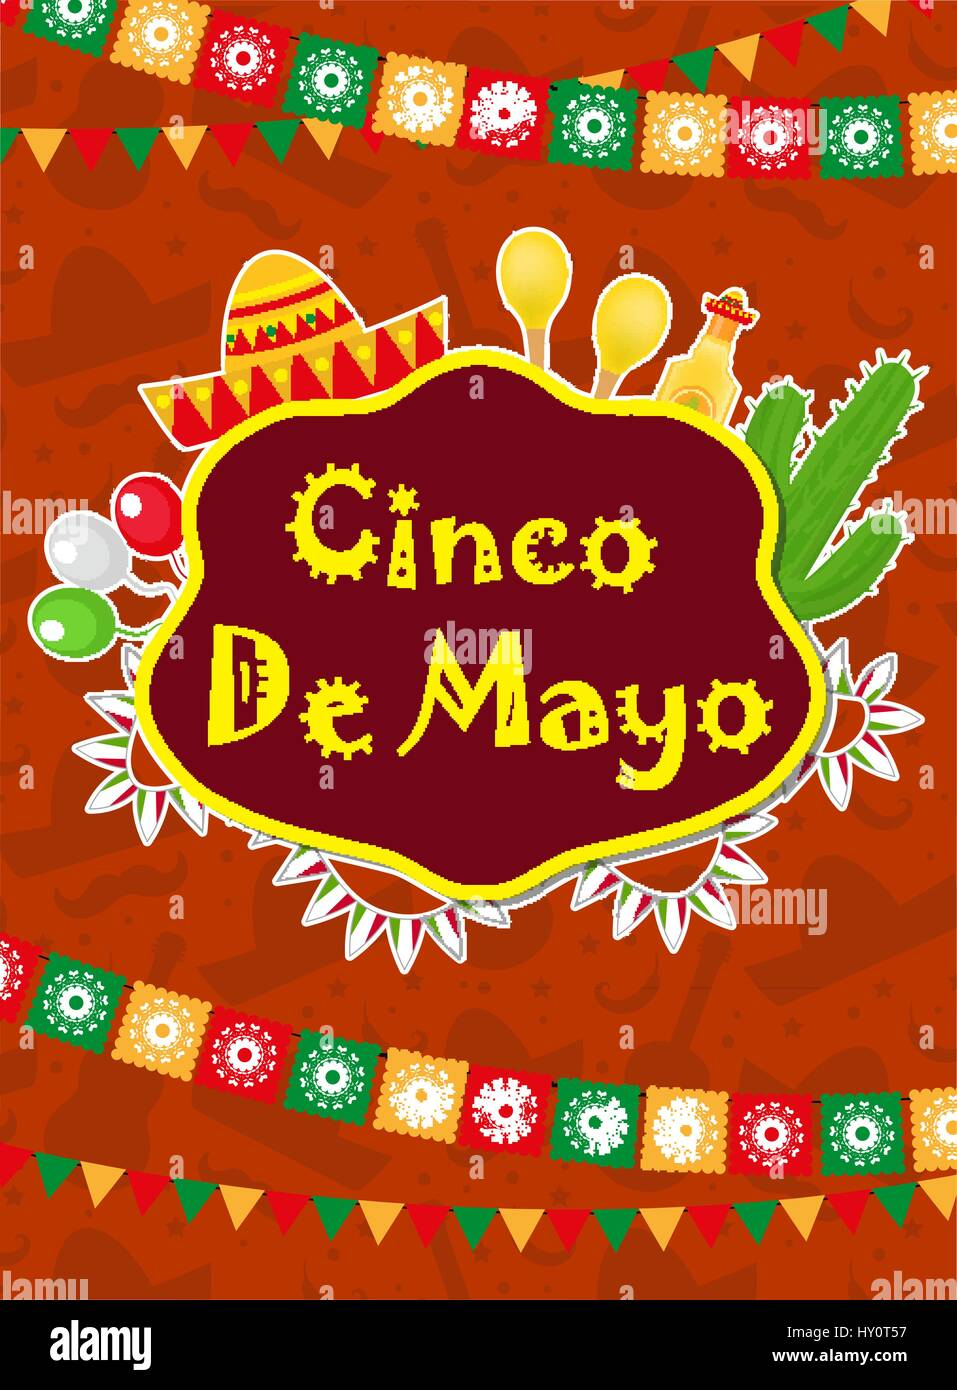 Cinco de mayo greeting card template for flyer poster cinco de mayo greeting card template for flyer poster invitation mexican celebration with traditional symbols vector illustration stopboris Images